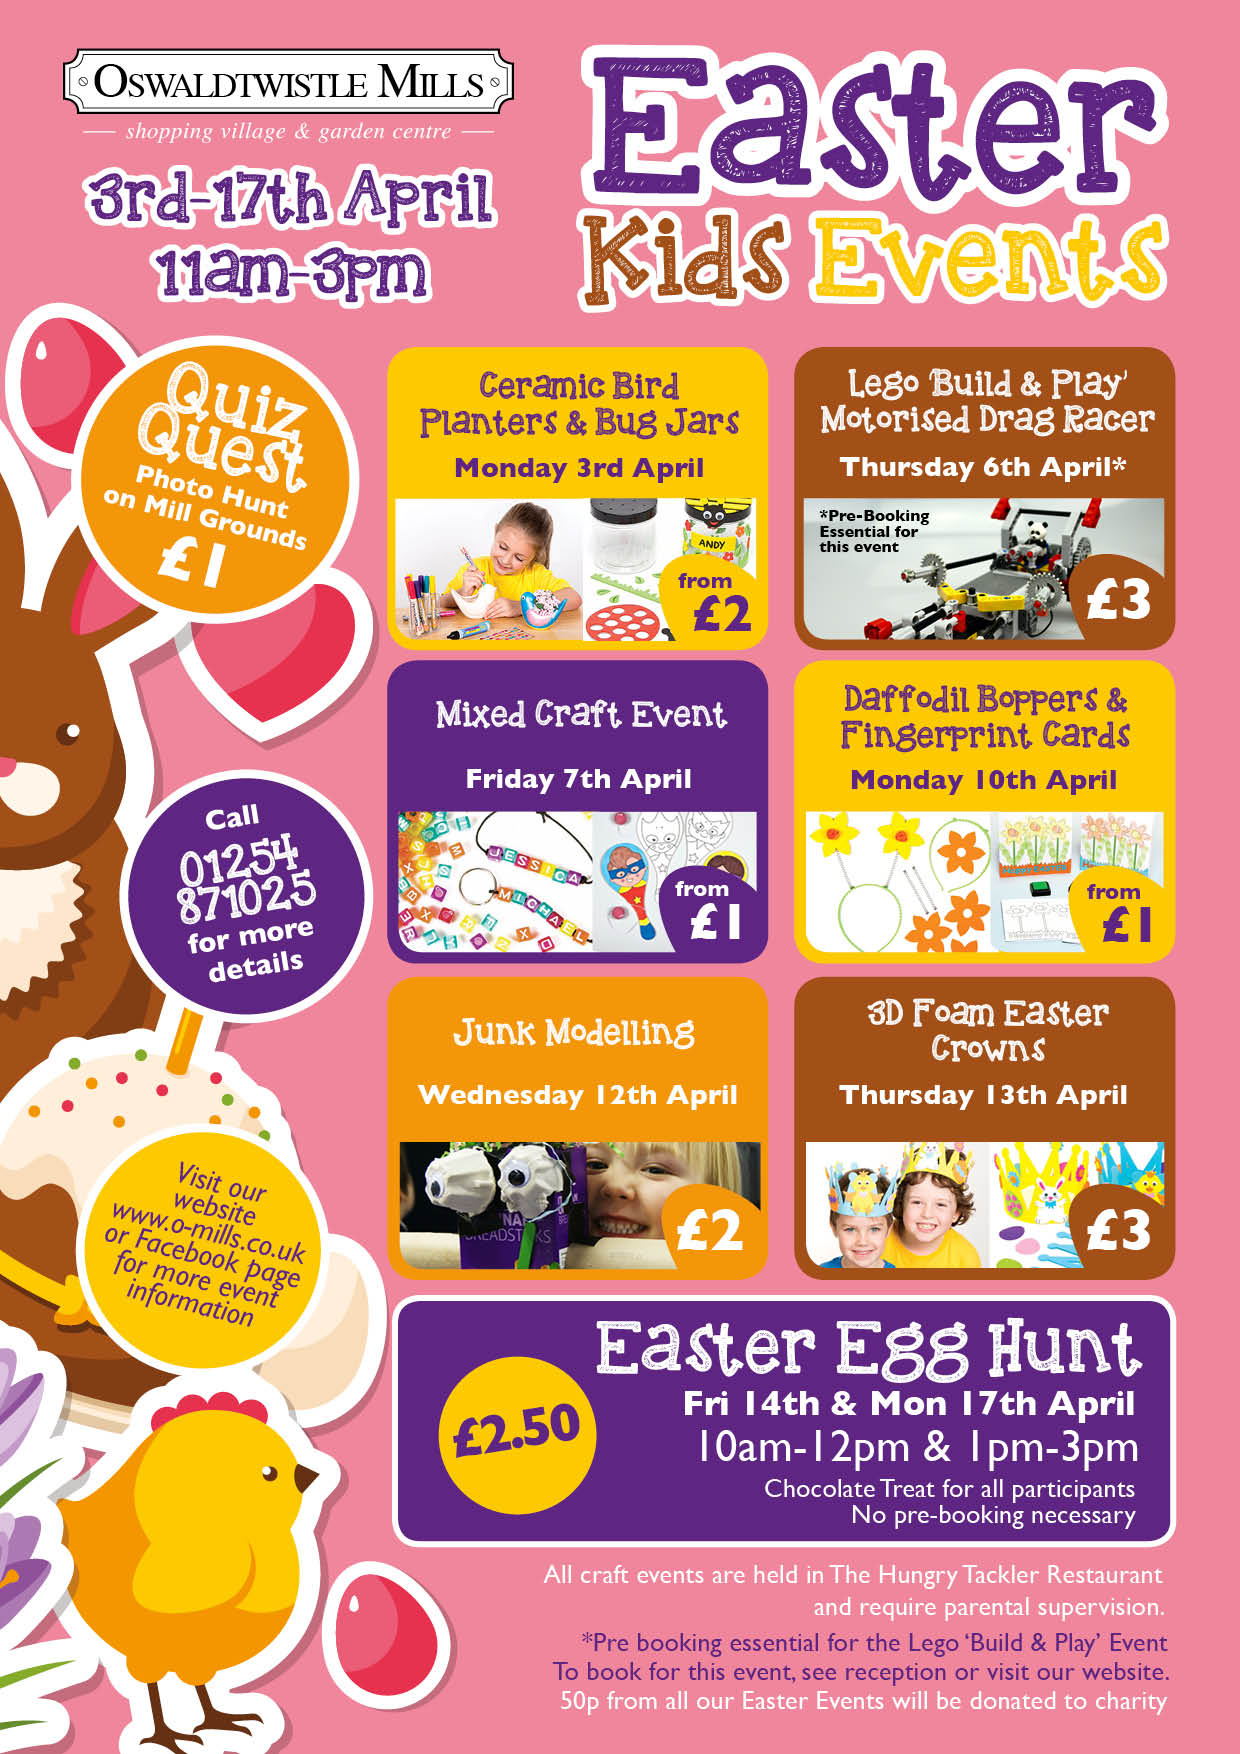 Easter Kids Events at Oswaldtwistle Mills